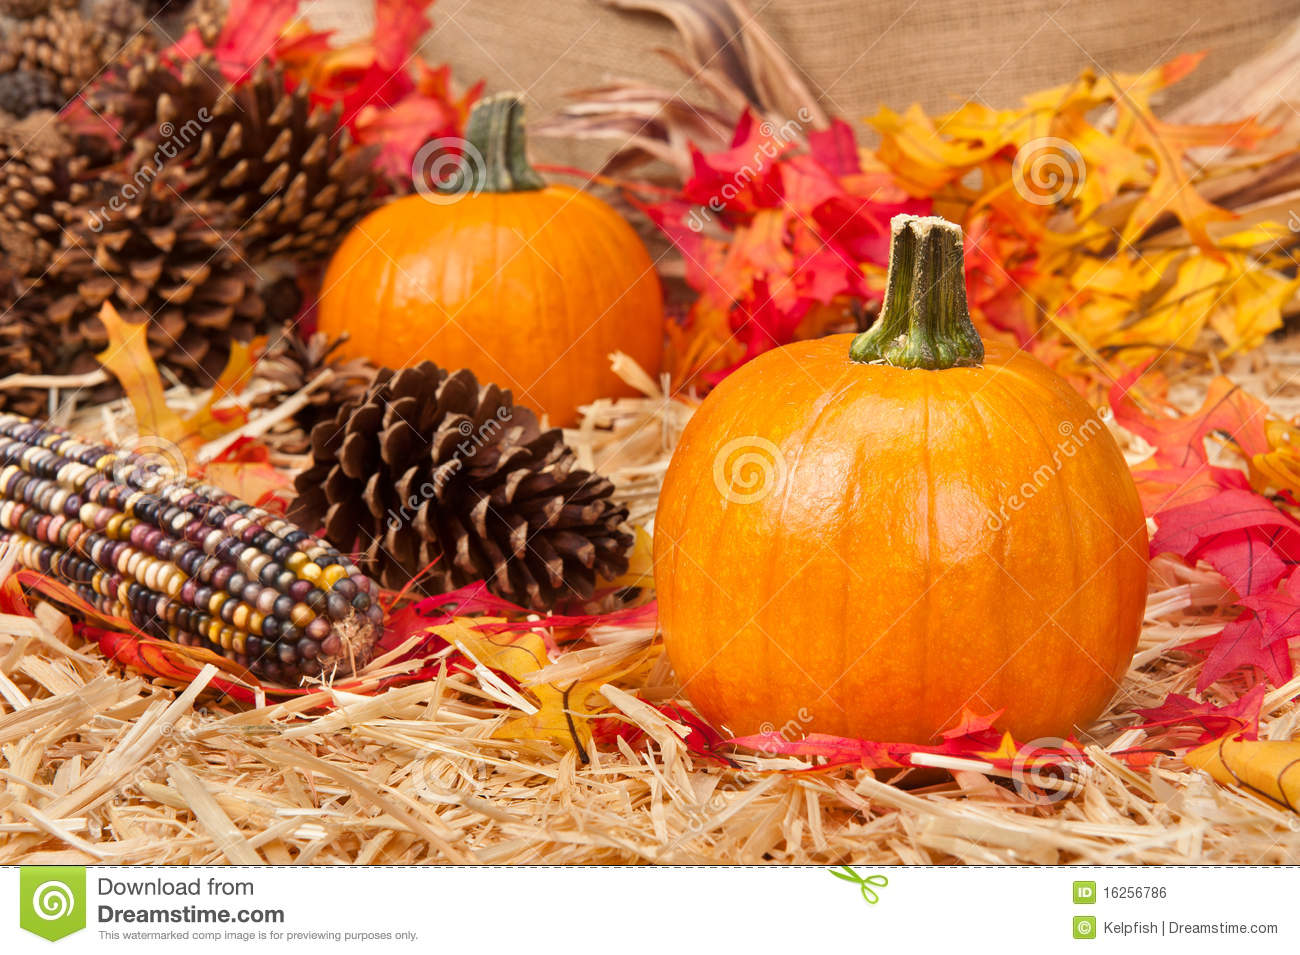 Pumpkins Fall Leaves Stock Photos, Images, & Pictures - 6,857 Images